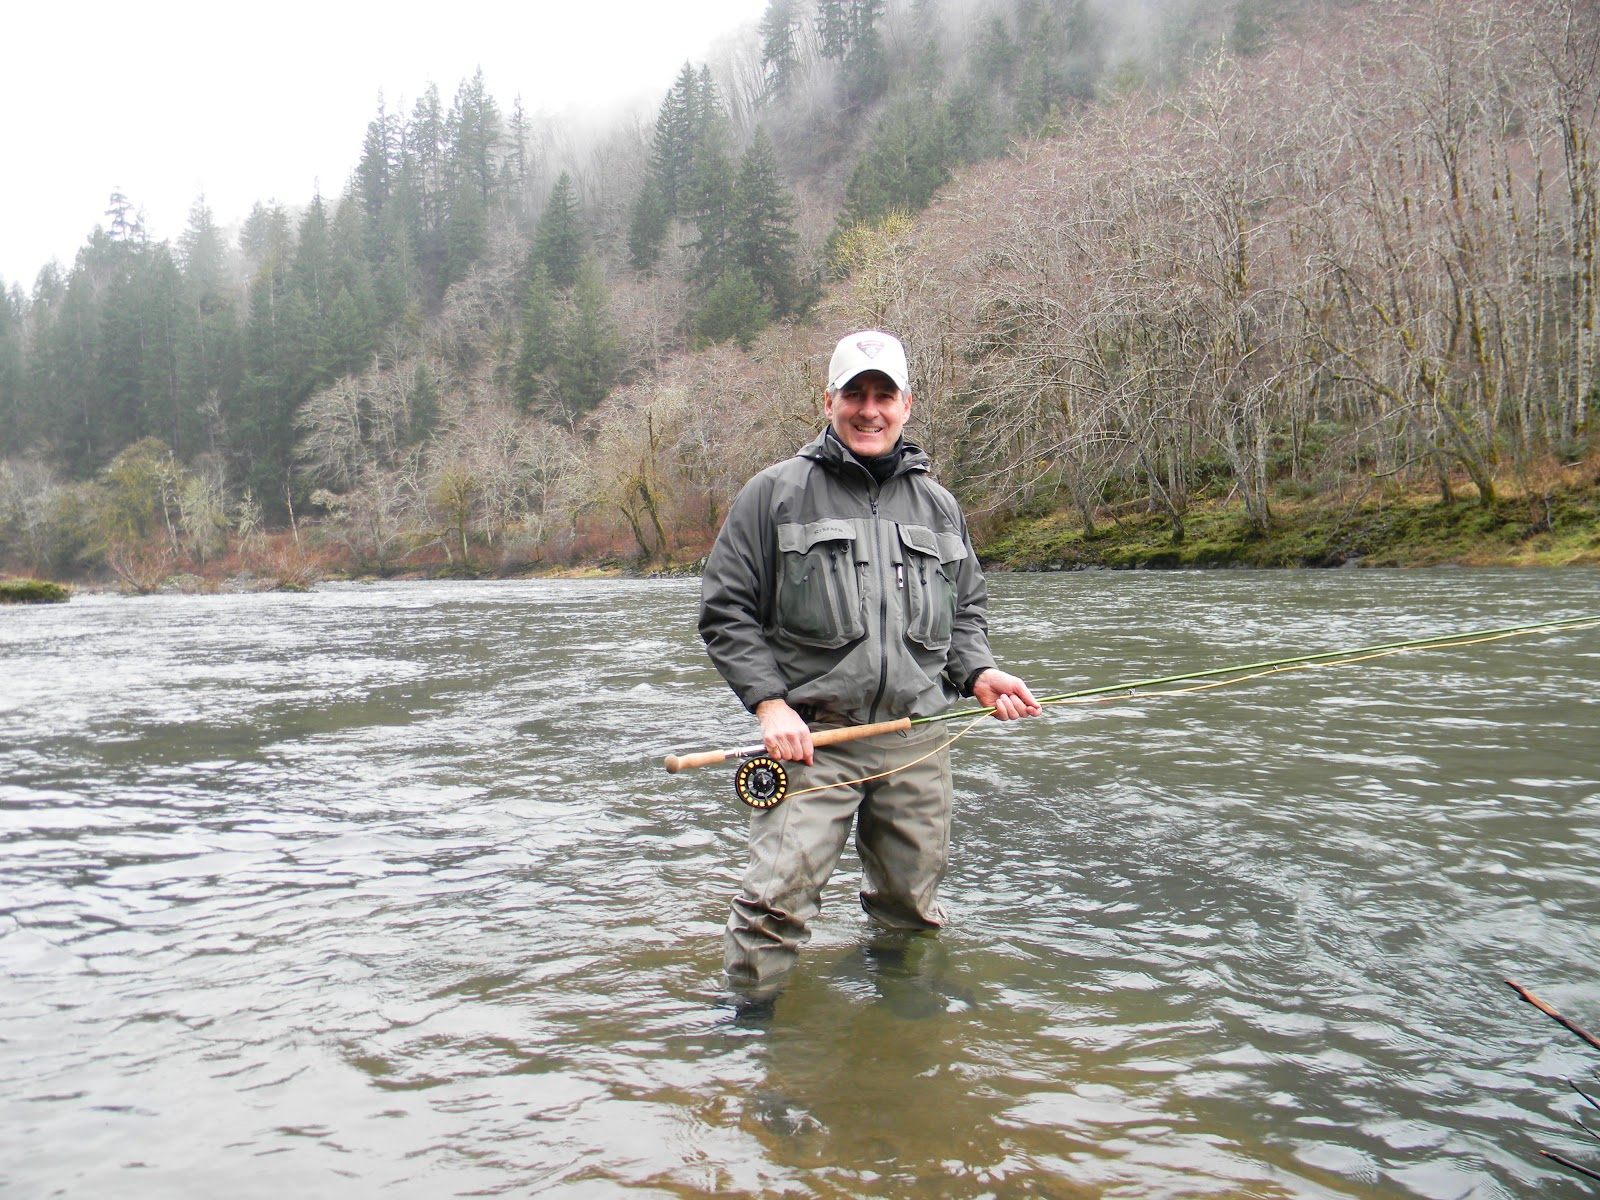 Bob humphrey fly fishing llc oregon steelhead trip for Oregon steelhead fishing